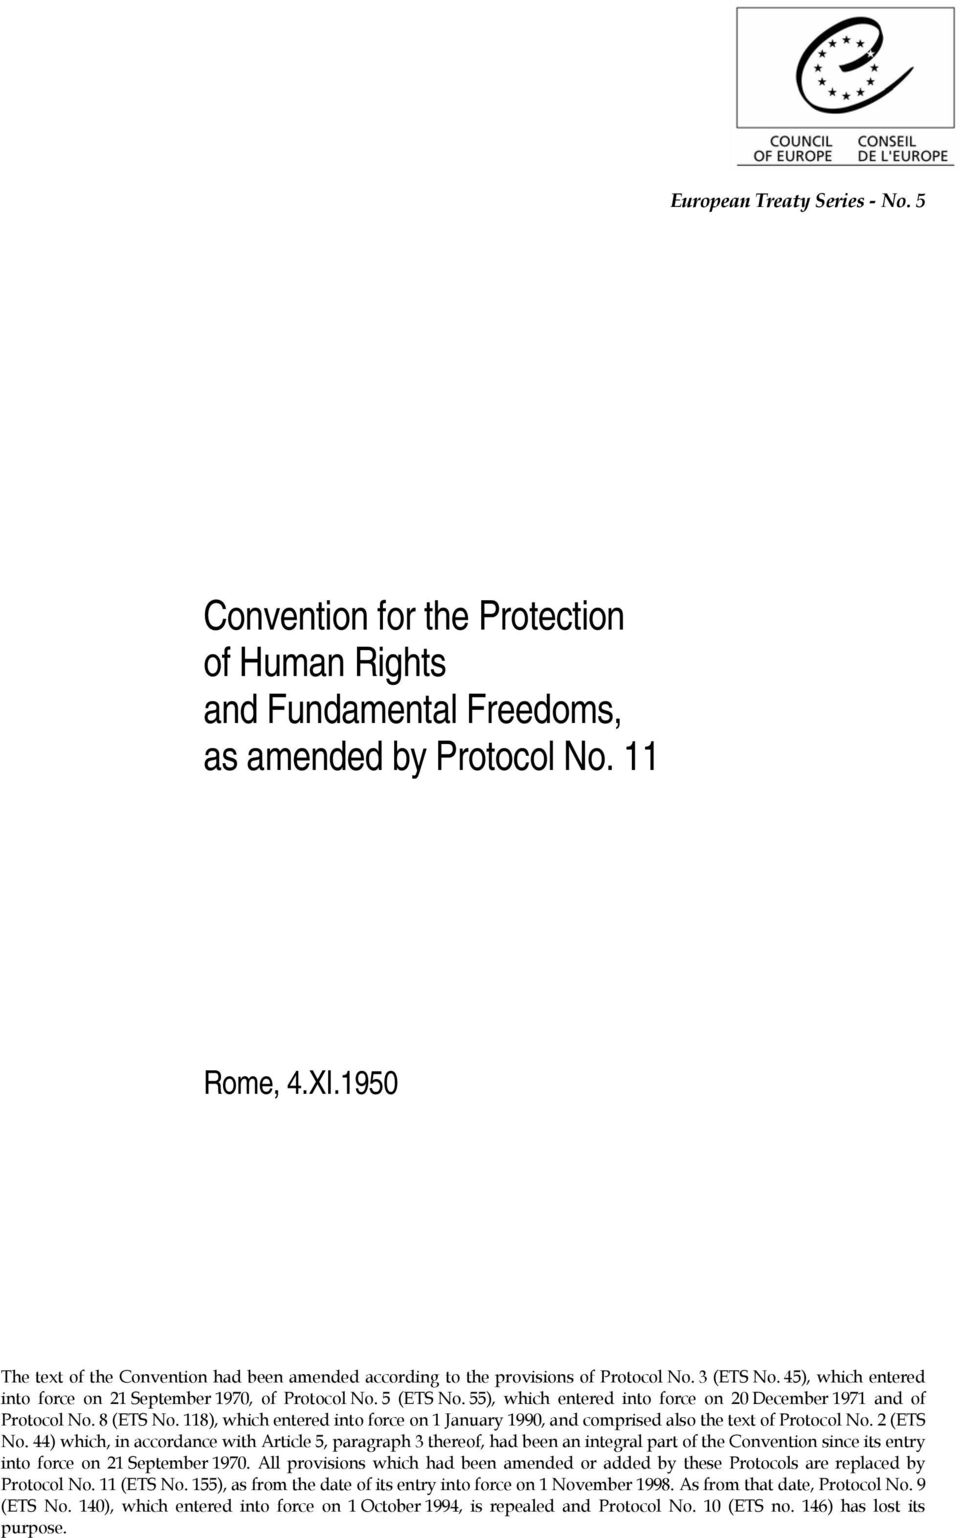 55), which entered into force on 20 December 1971 and of Protocol No. 8 (ETS No. 118), which entered into force on 1 January 1990, and comprised also the text of Protocol No. 2 (ETS No.